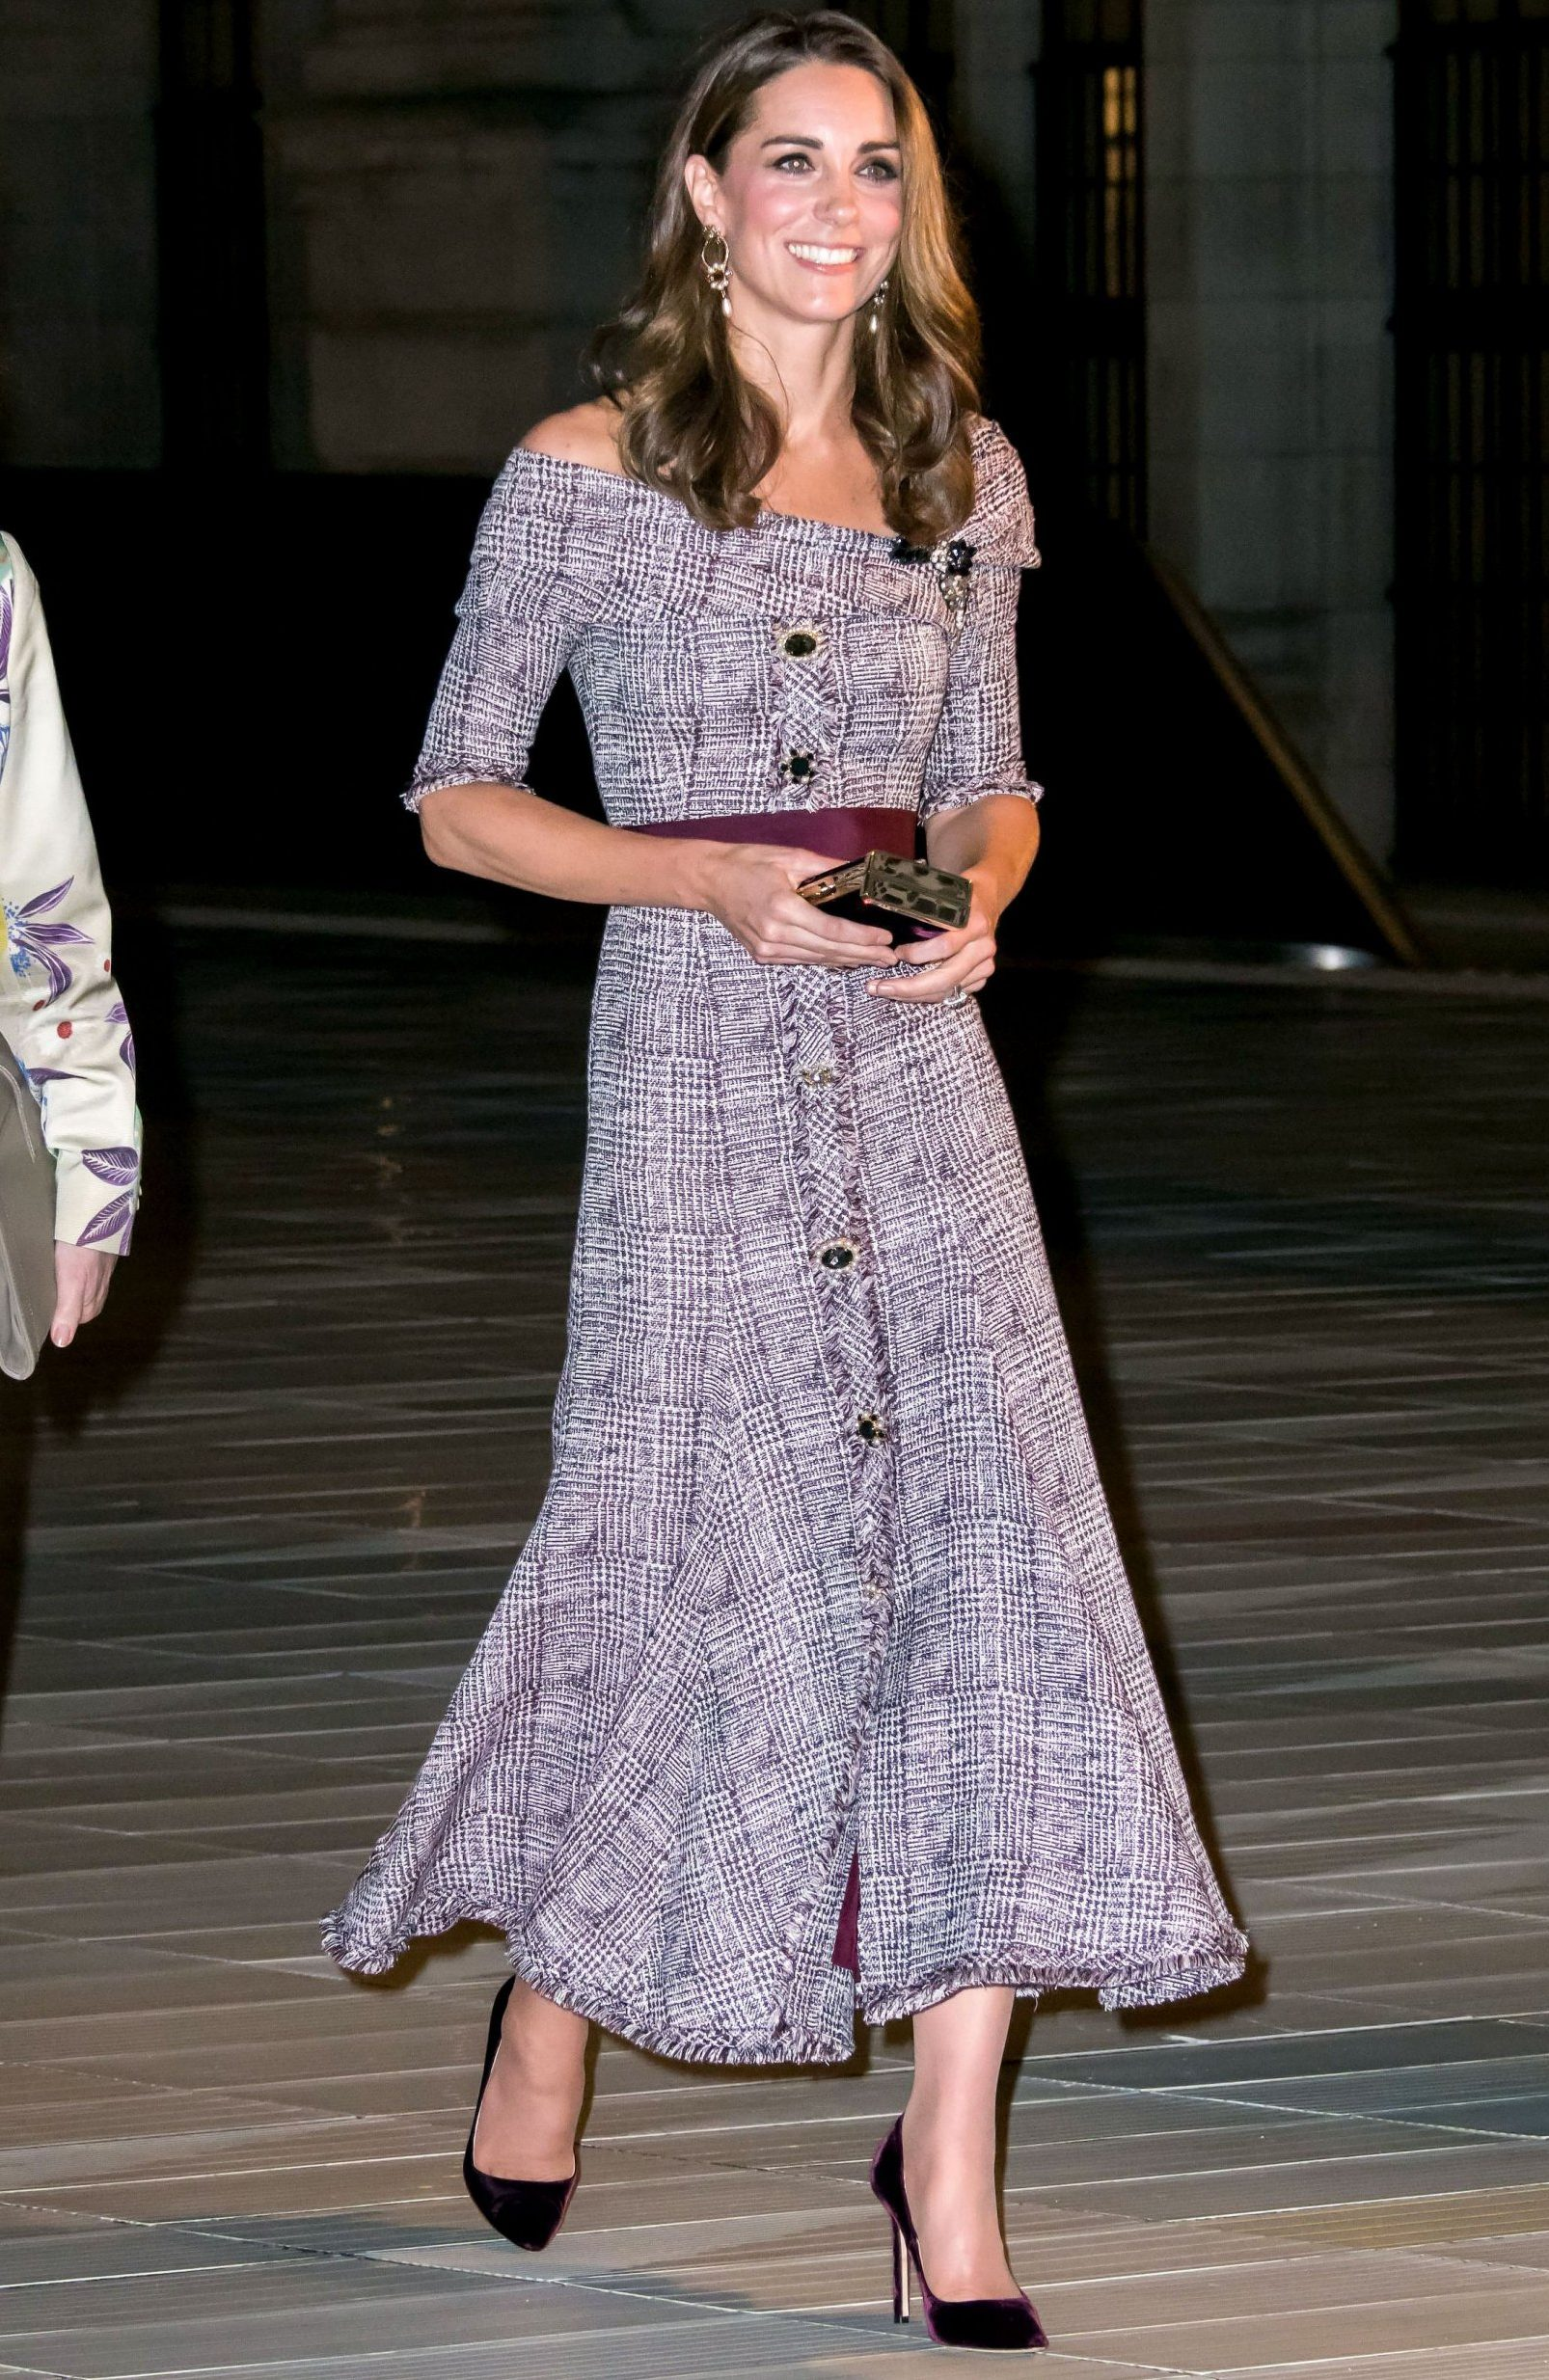 Mandatory Credit: Photo by Nils Jorgensen/REX (9921753a) Catherine Duchess of Cambridge Catherine Duchess of Cambridge opens V&A Photography Centre, London, UK - 10 Oct 2018 Catherine, Duchess of Cambridge opens a new centre at Victoria and Albert Museum developing its photography collection. Sir Paul McCartney has donated dozens of photographs taken by his late wife Linda, including images of The Beatles, Jimi Hendrix and personal portraits of the McCartney family on holiday.